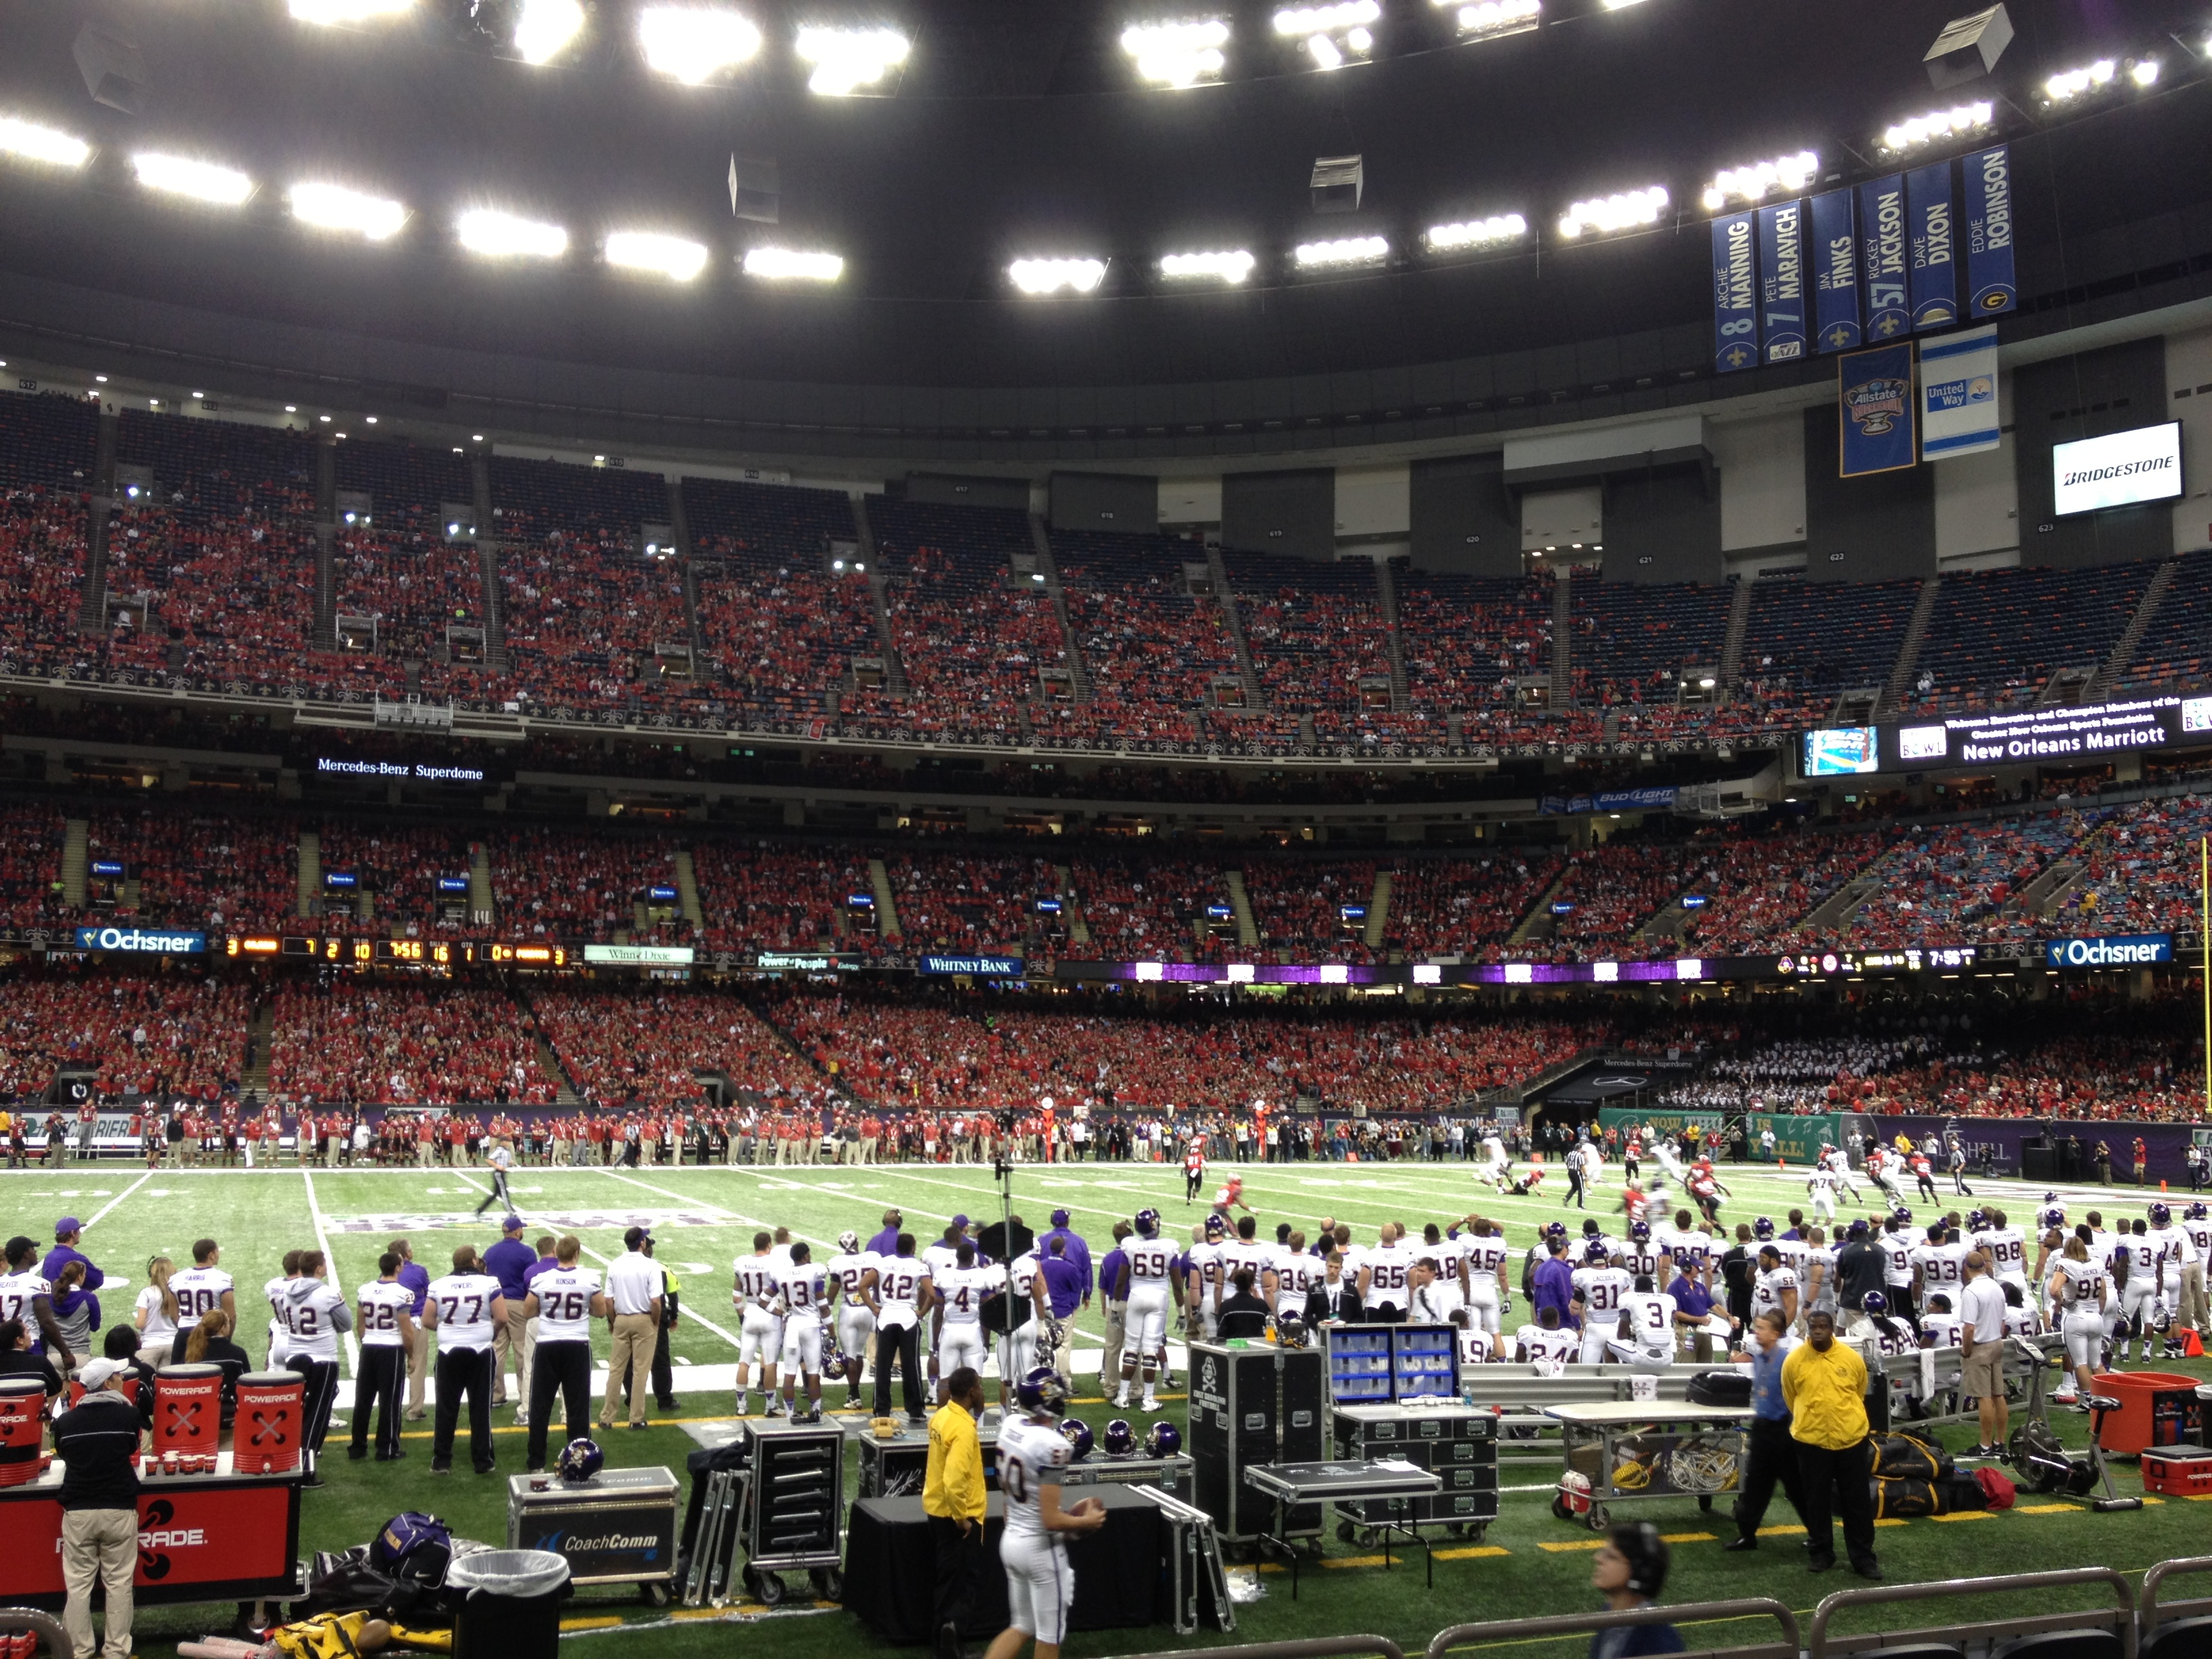 Captivating Mercedes Benz Superdome Interior, Home Of The New Orleans Bowl